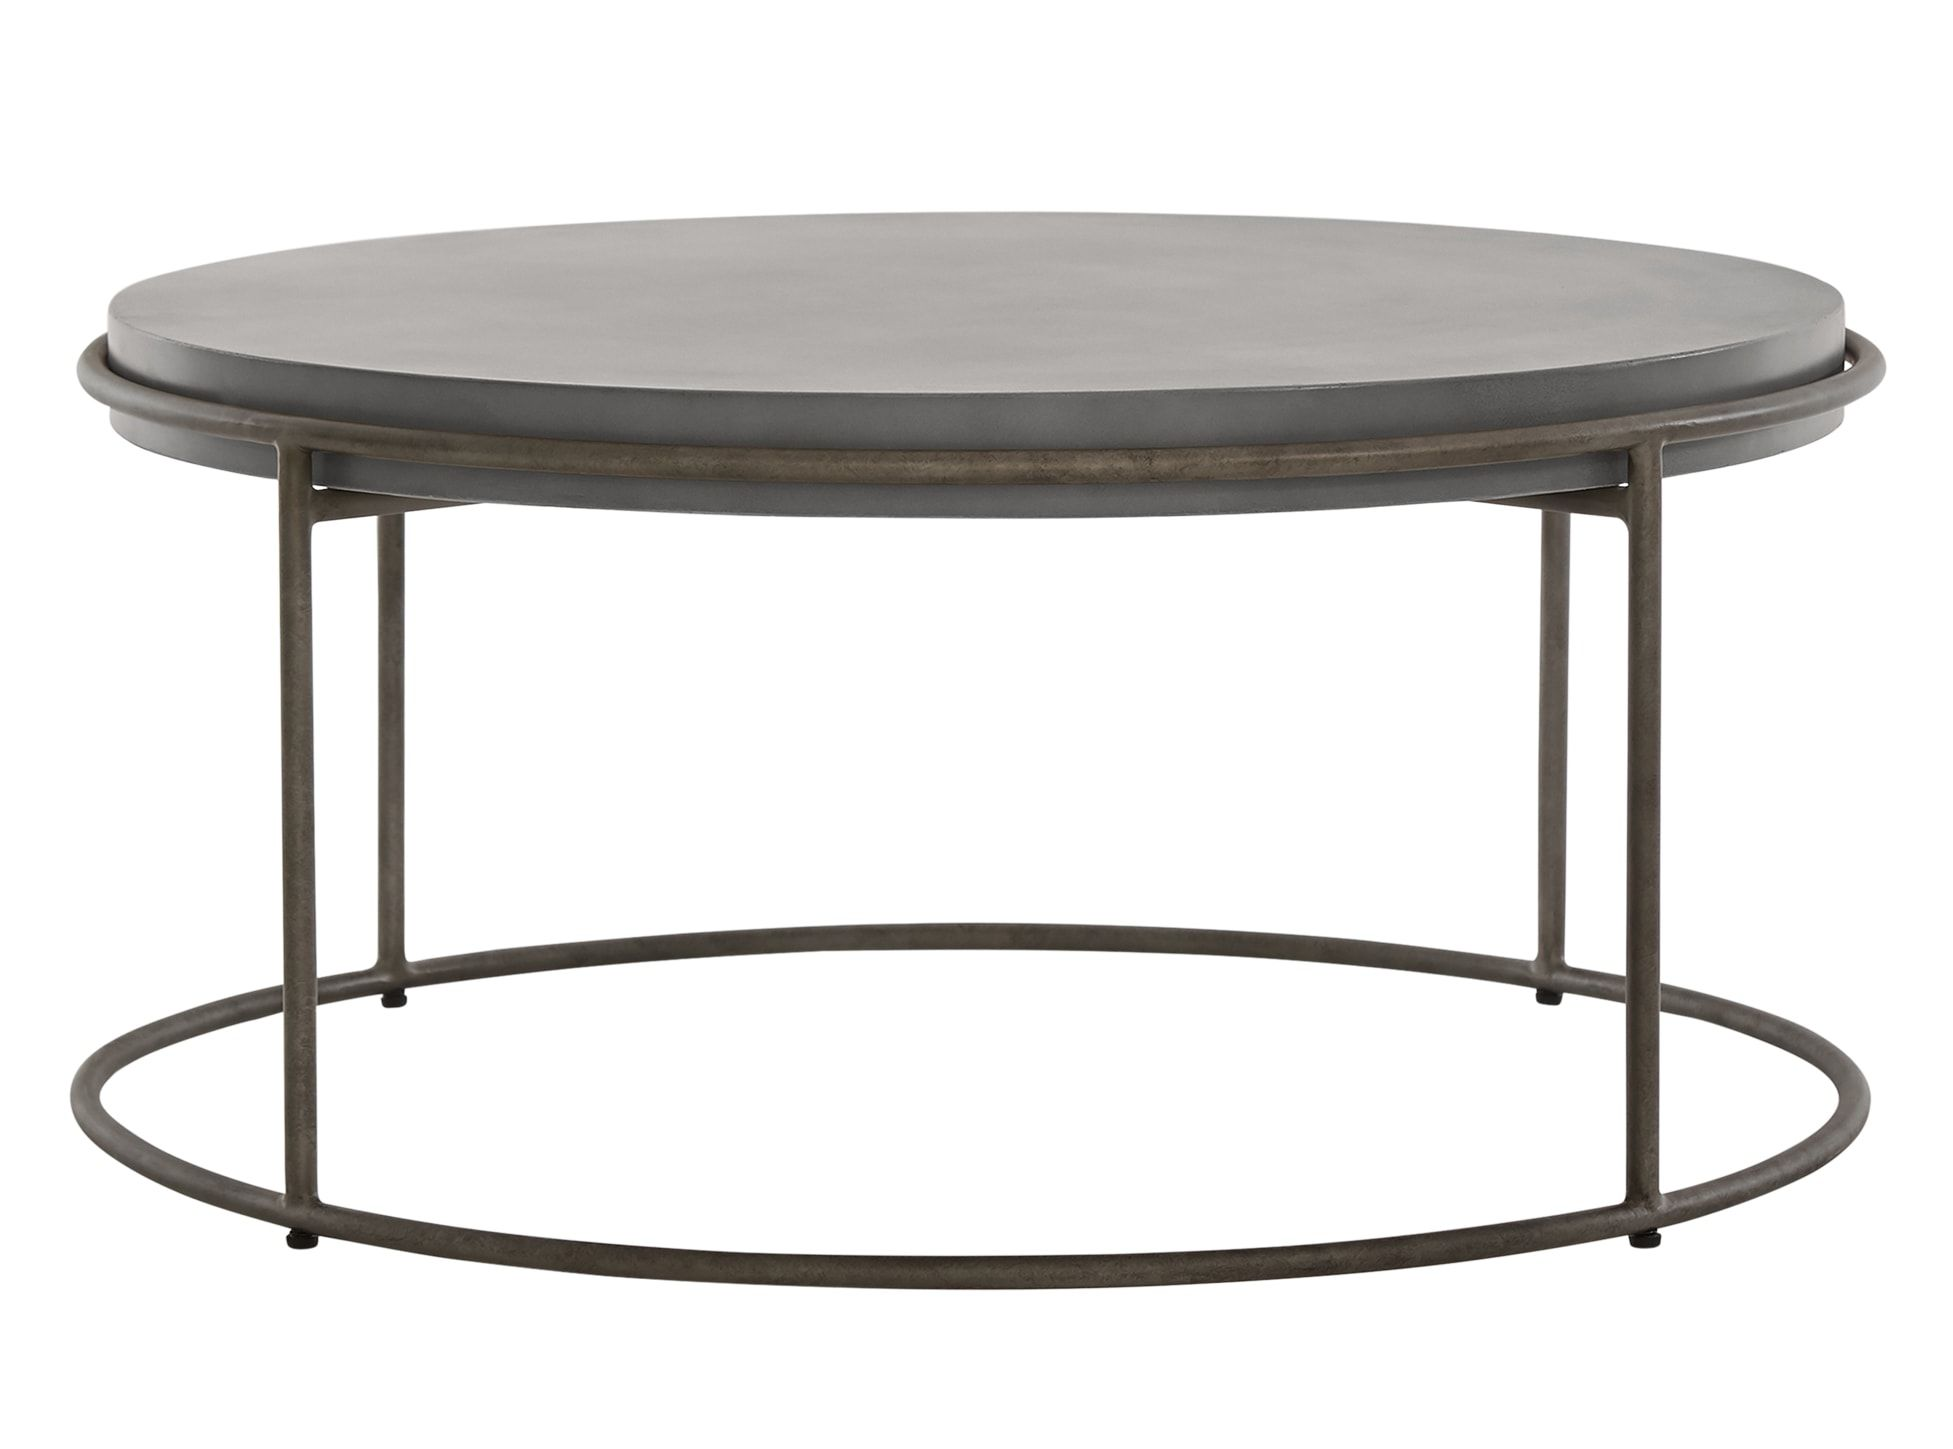 Table Basse Ronde Design Zurn Table Basse Ronde Béton Tahaa Round Coffee Table